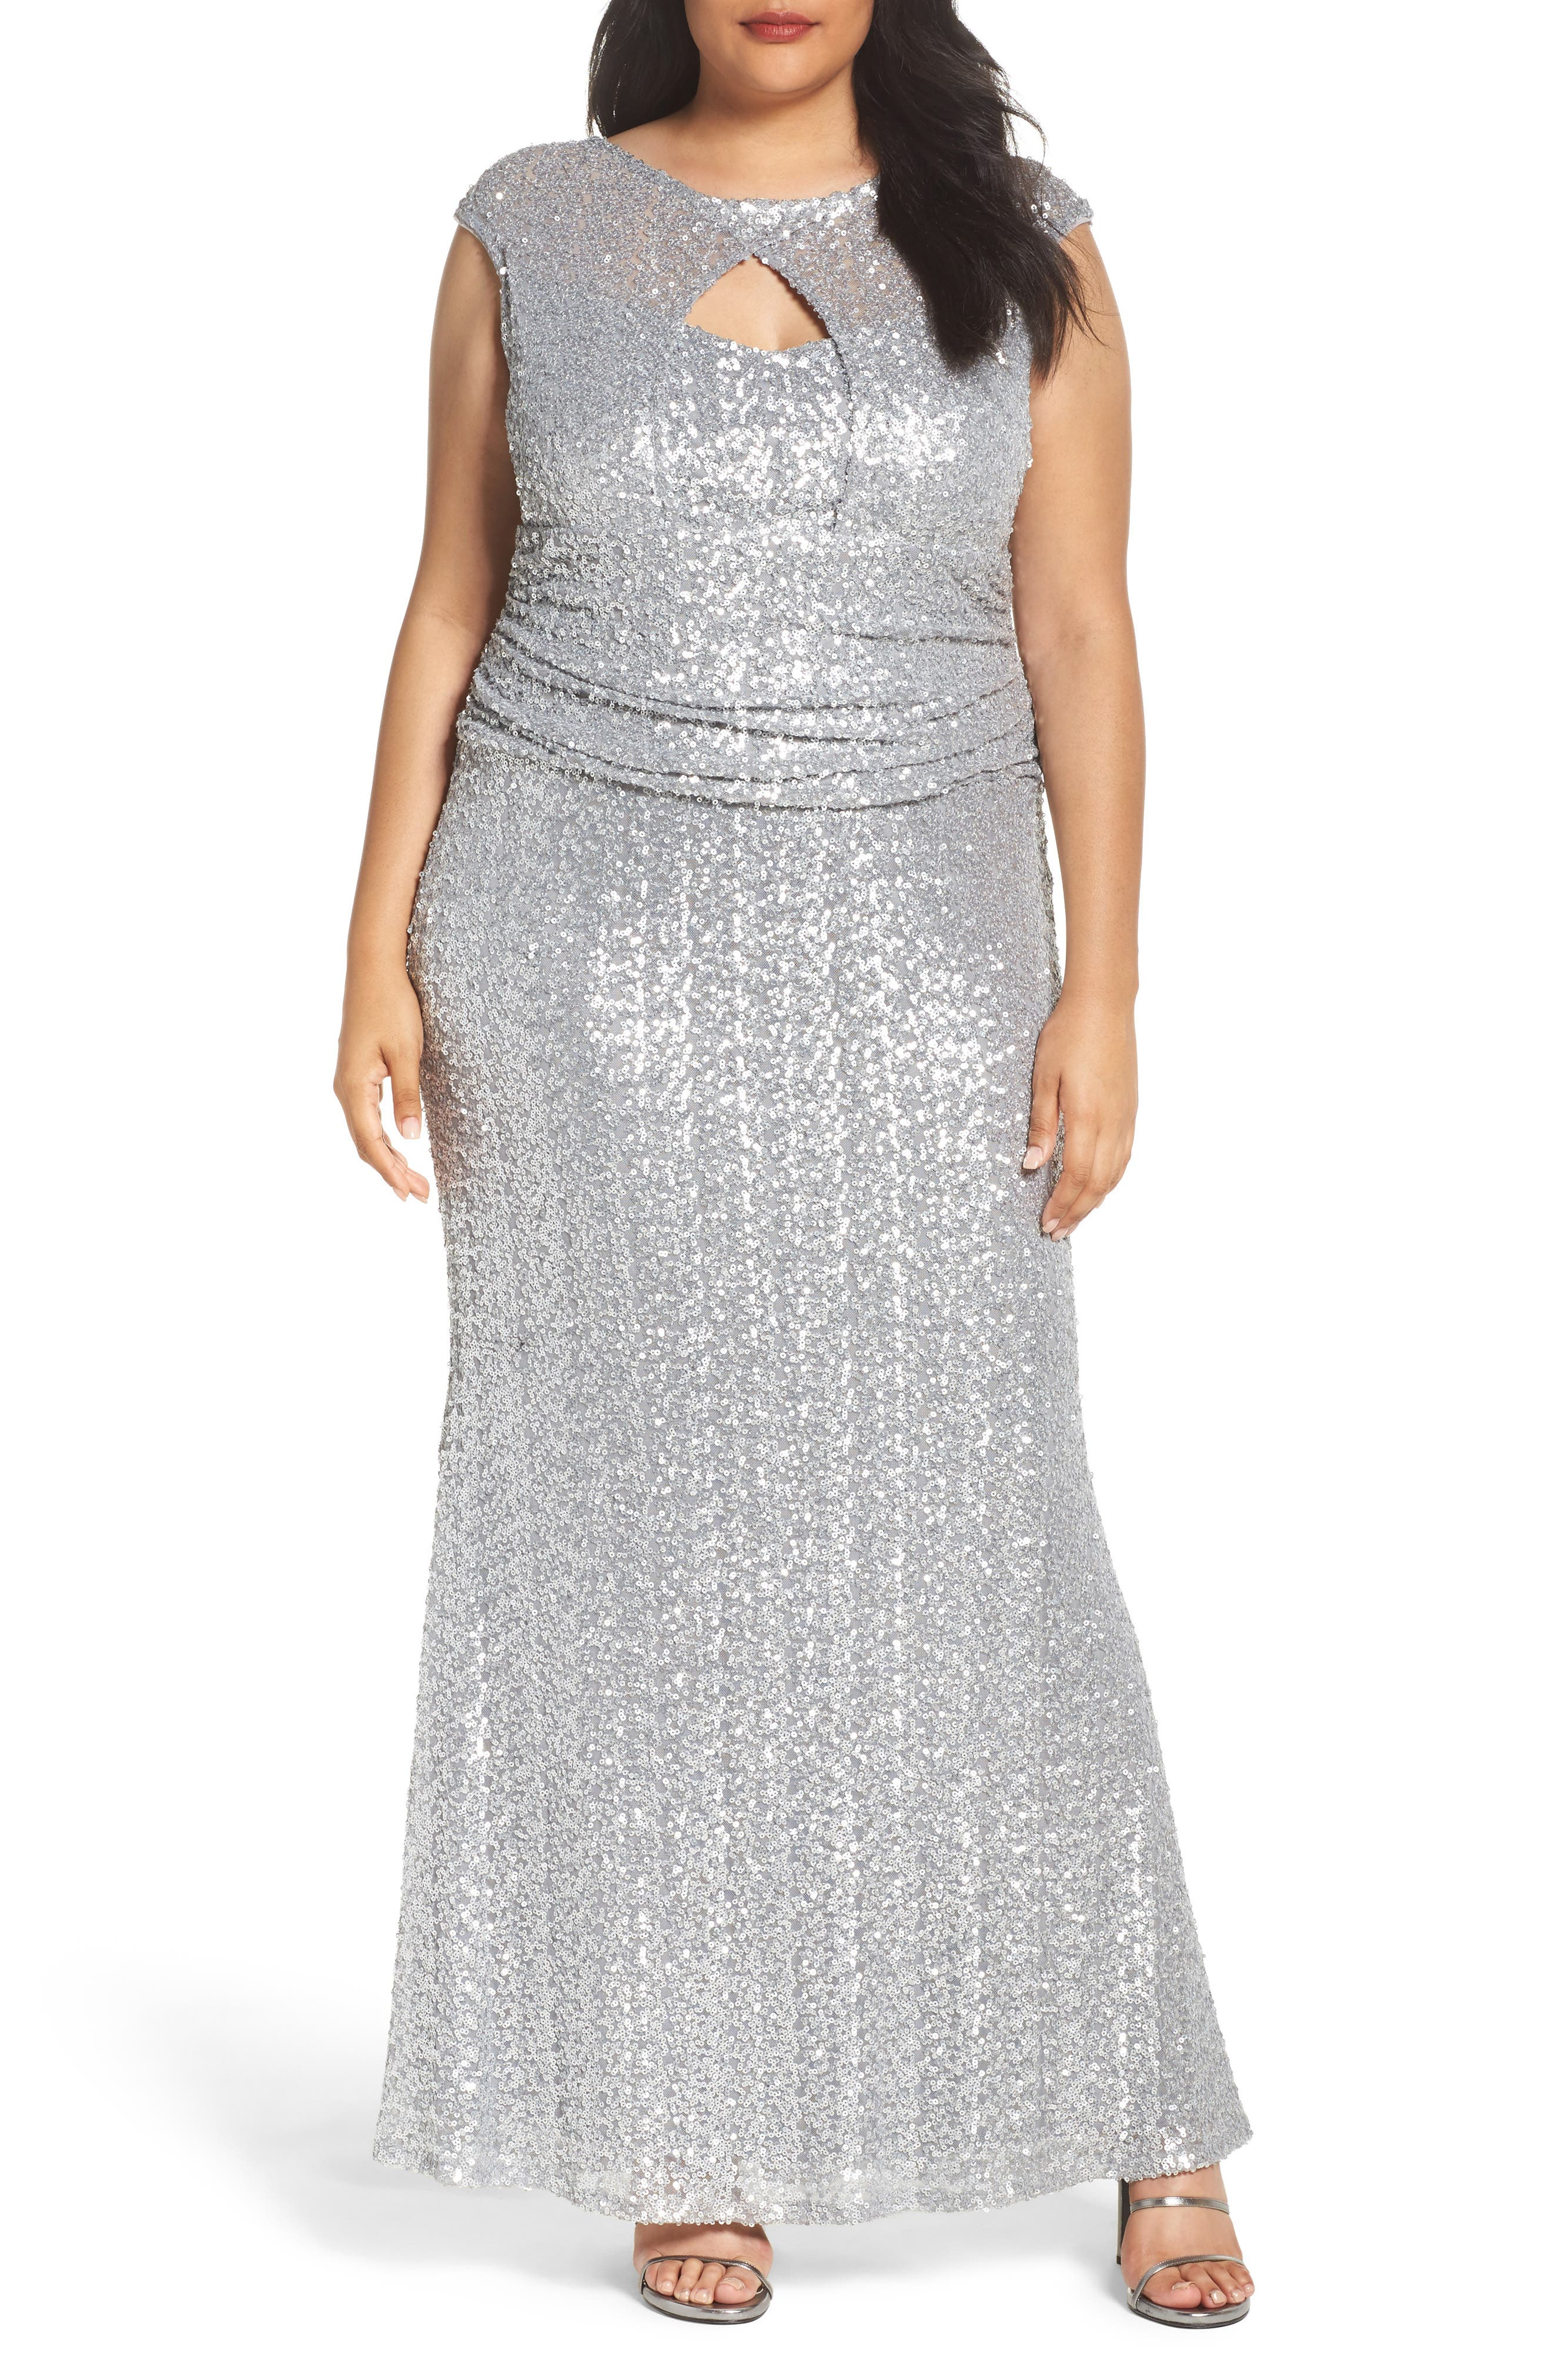 Cutout Sequin Lace Gown,                             Main thumbnail 1, color,                             040